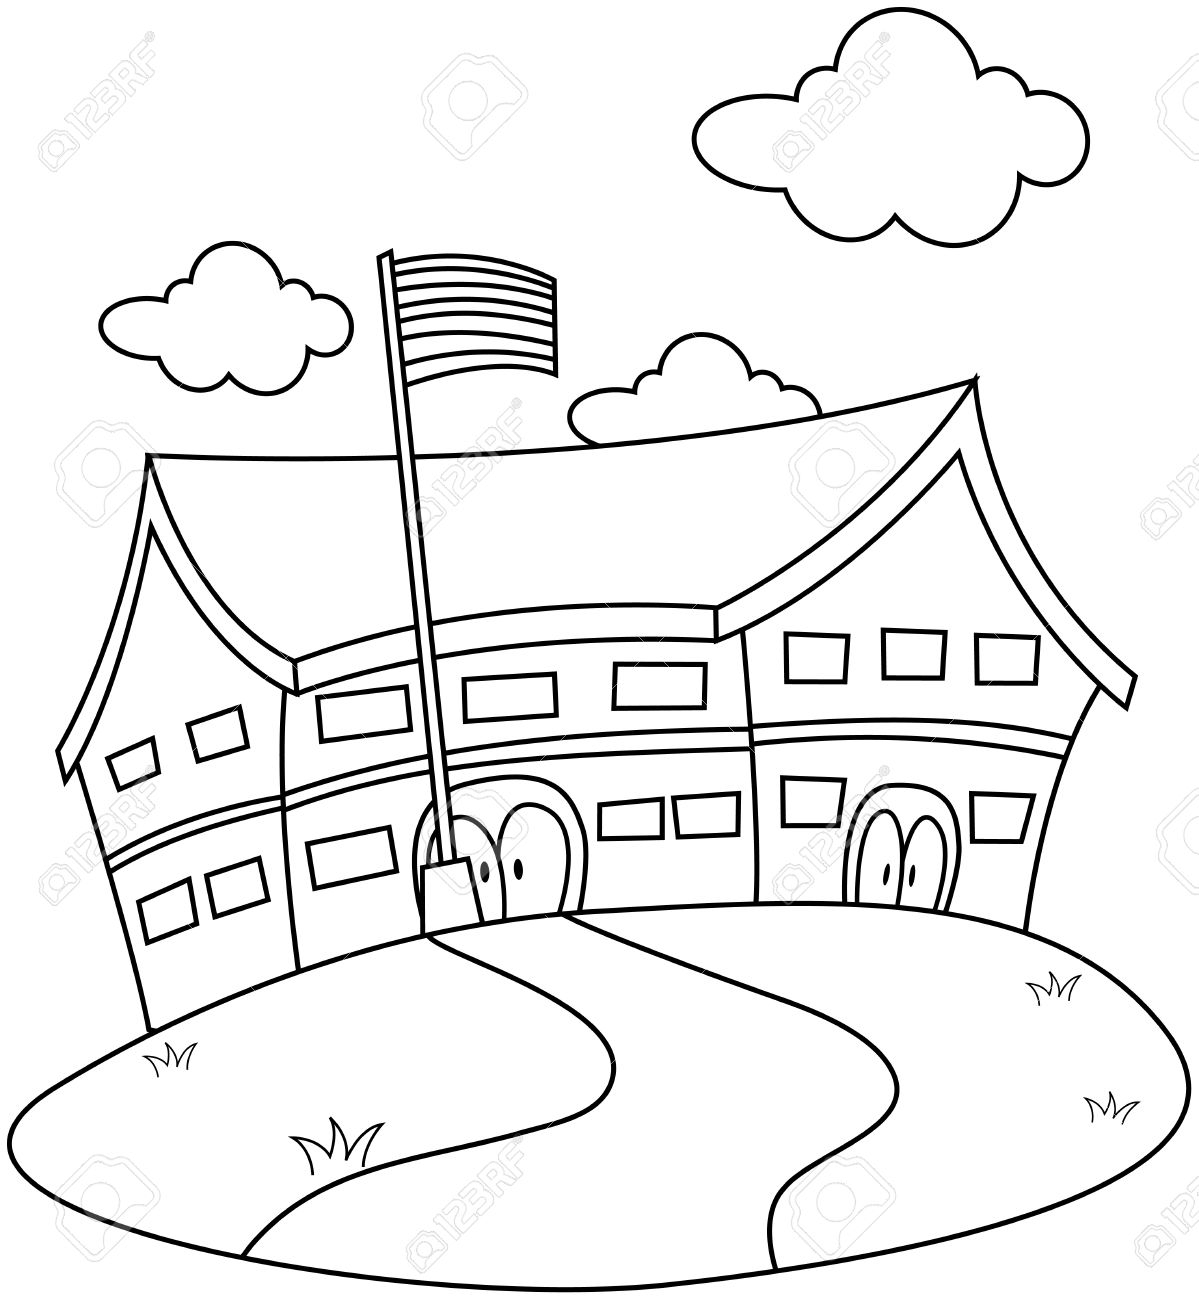 1199x1300 Drawing Of A School Line Art Illustration Of A School Complete